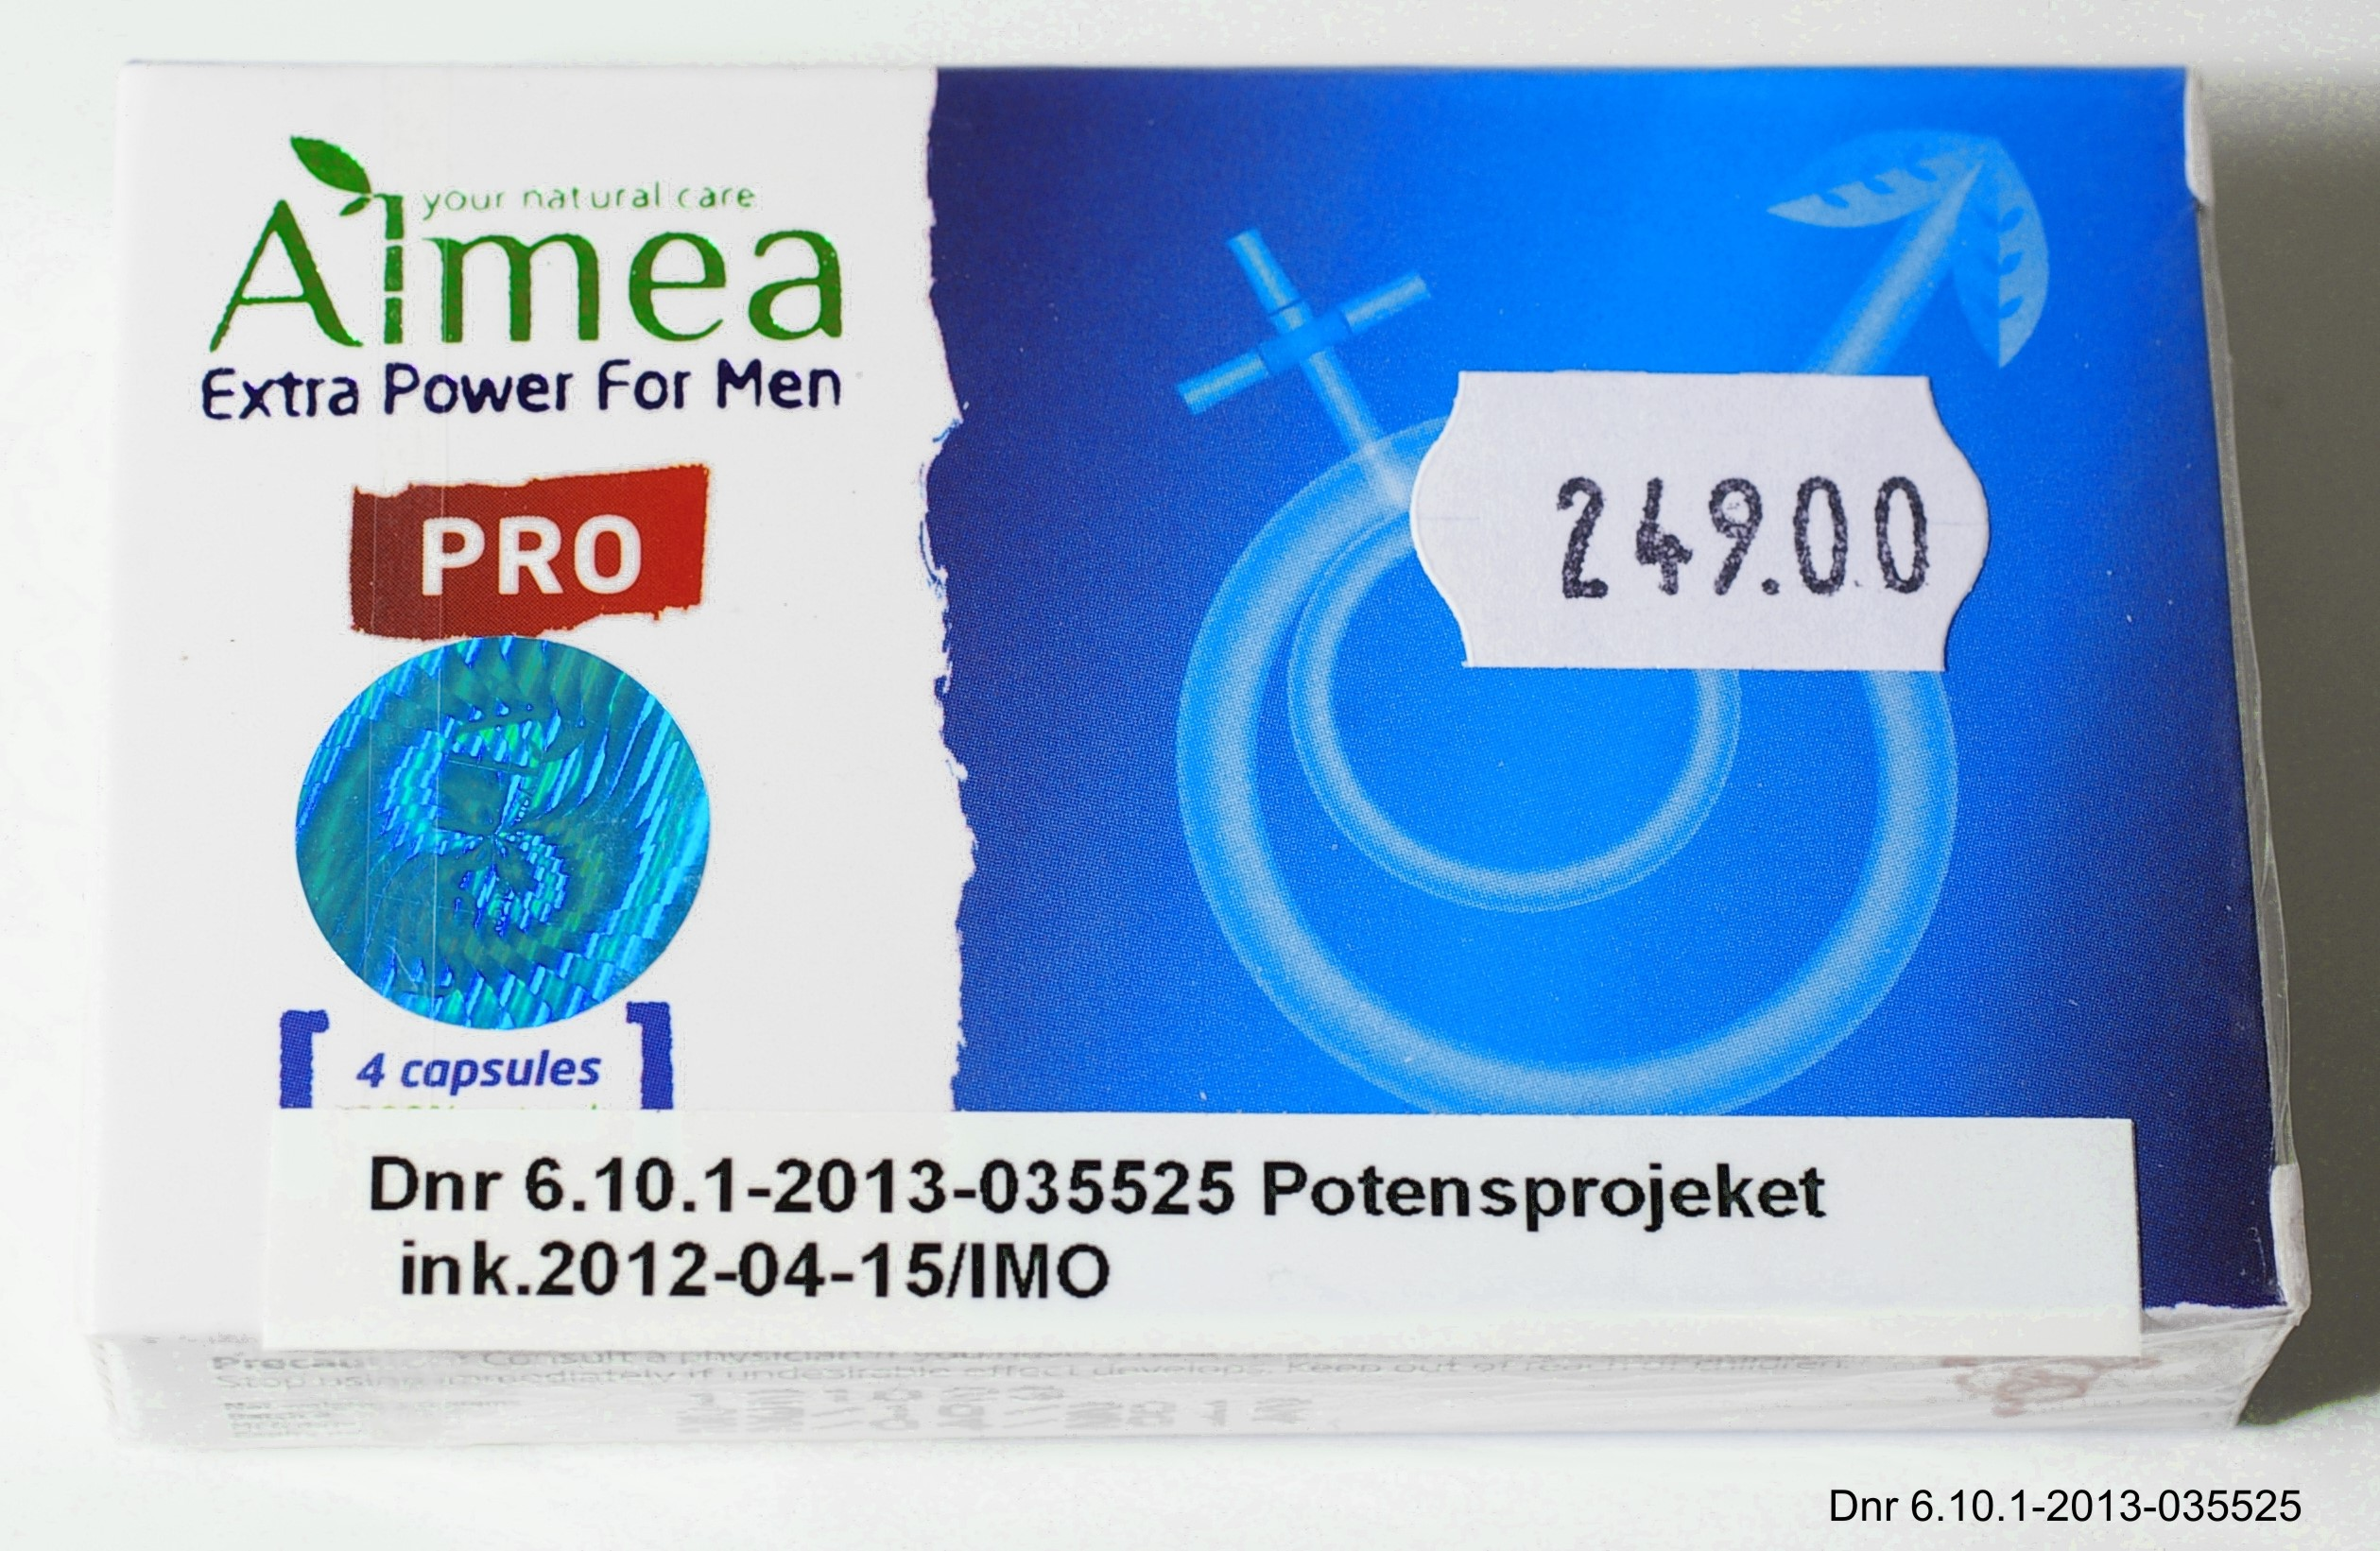 Image of the illigal product: Almea Extra Power for Men